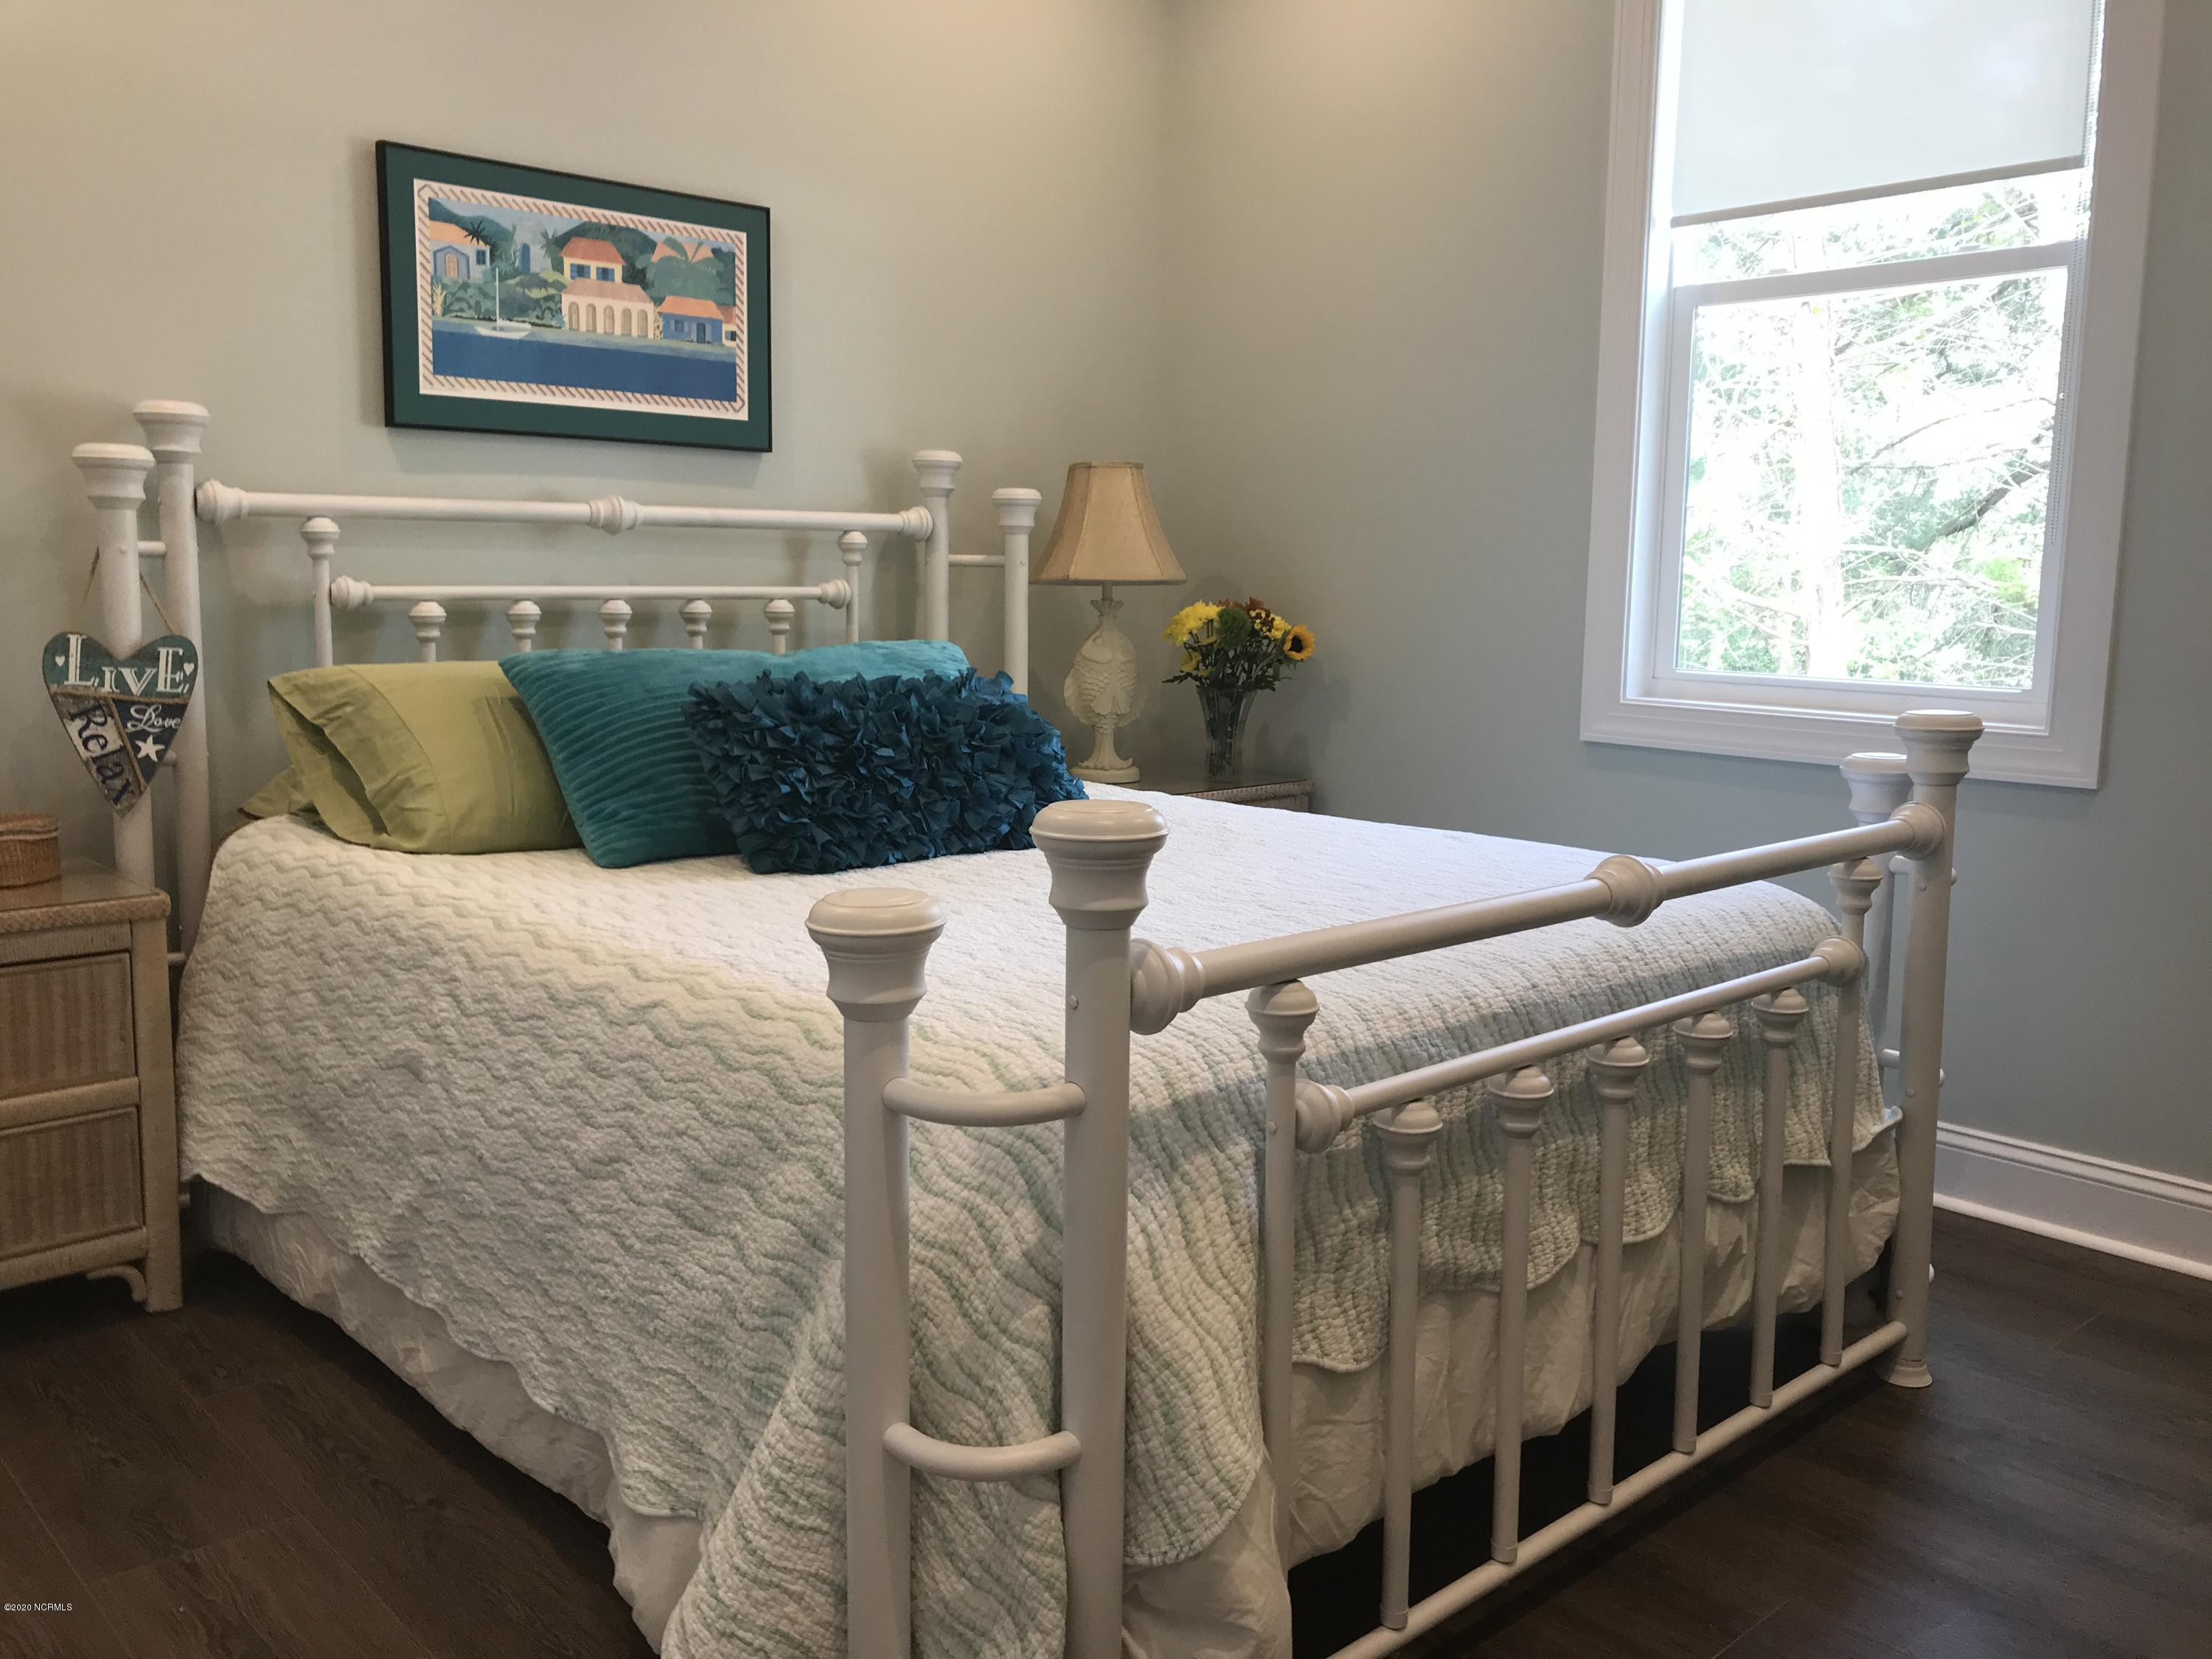 122 Evergreen Lane, Pine Knoll Shores, North Carolina 28512, 3 Bedrooms Bedrooms, 5 Rooms Rooms,2 BathroomsBathrooms,Single family residence,For sale,Evergreen,100190255